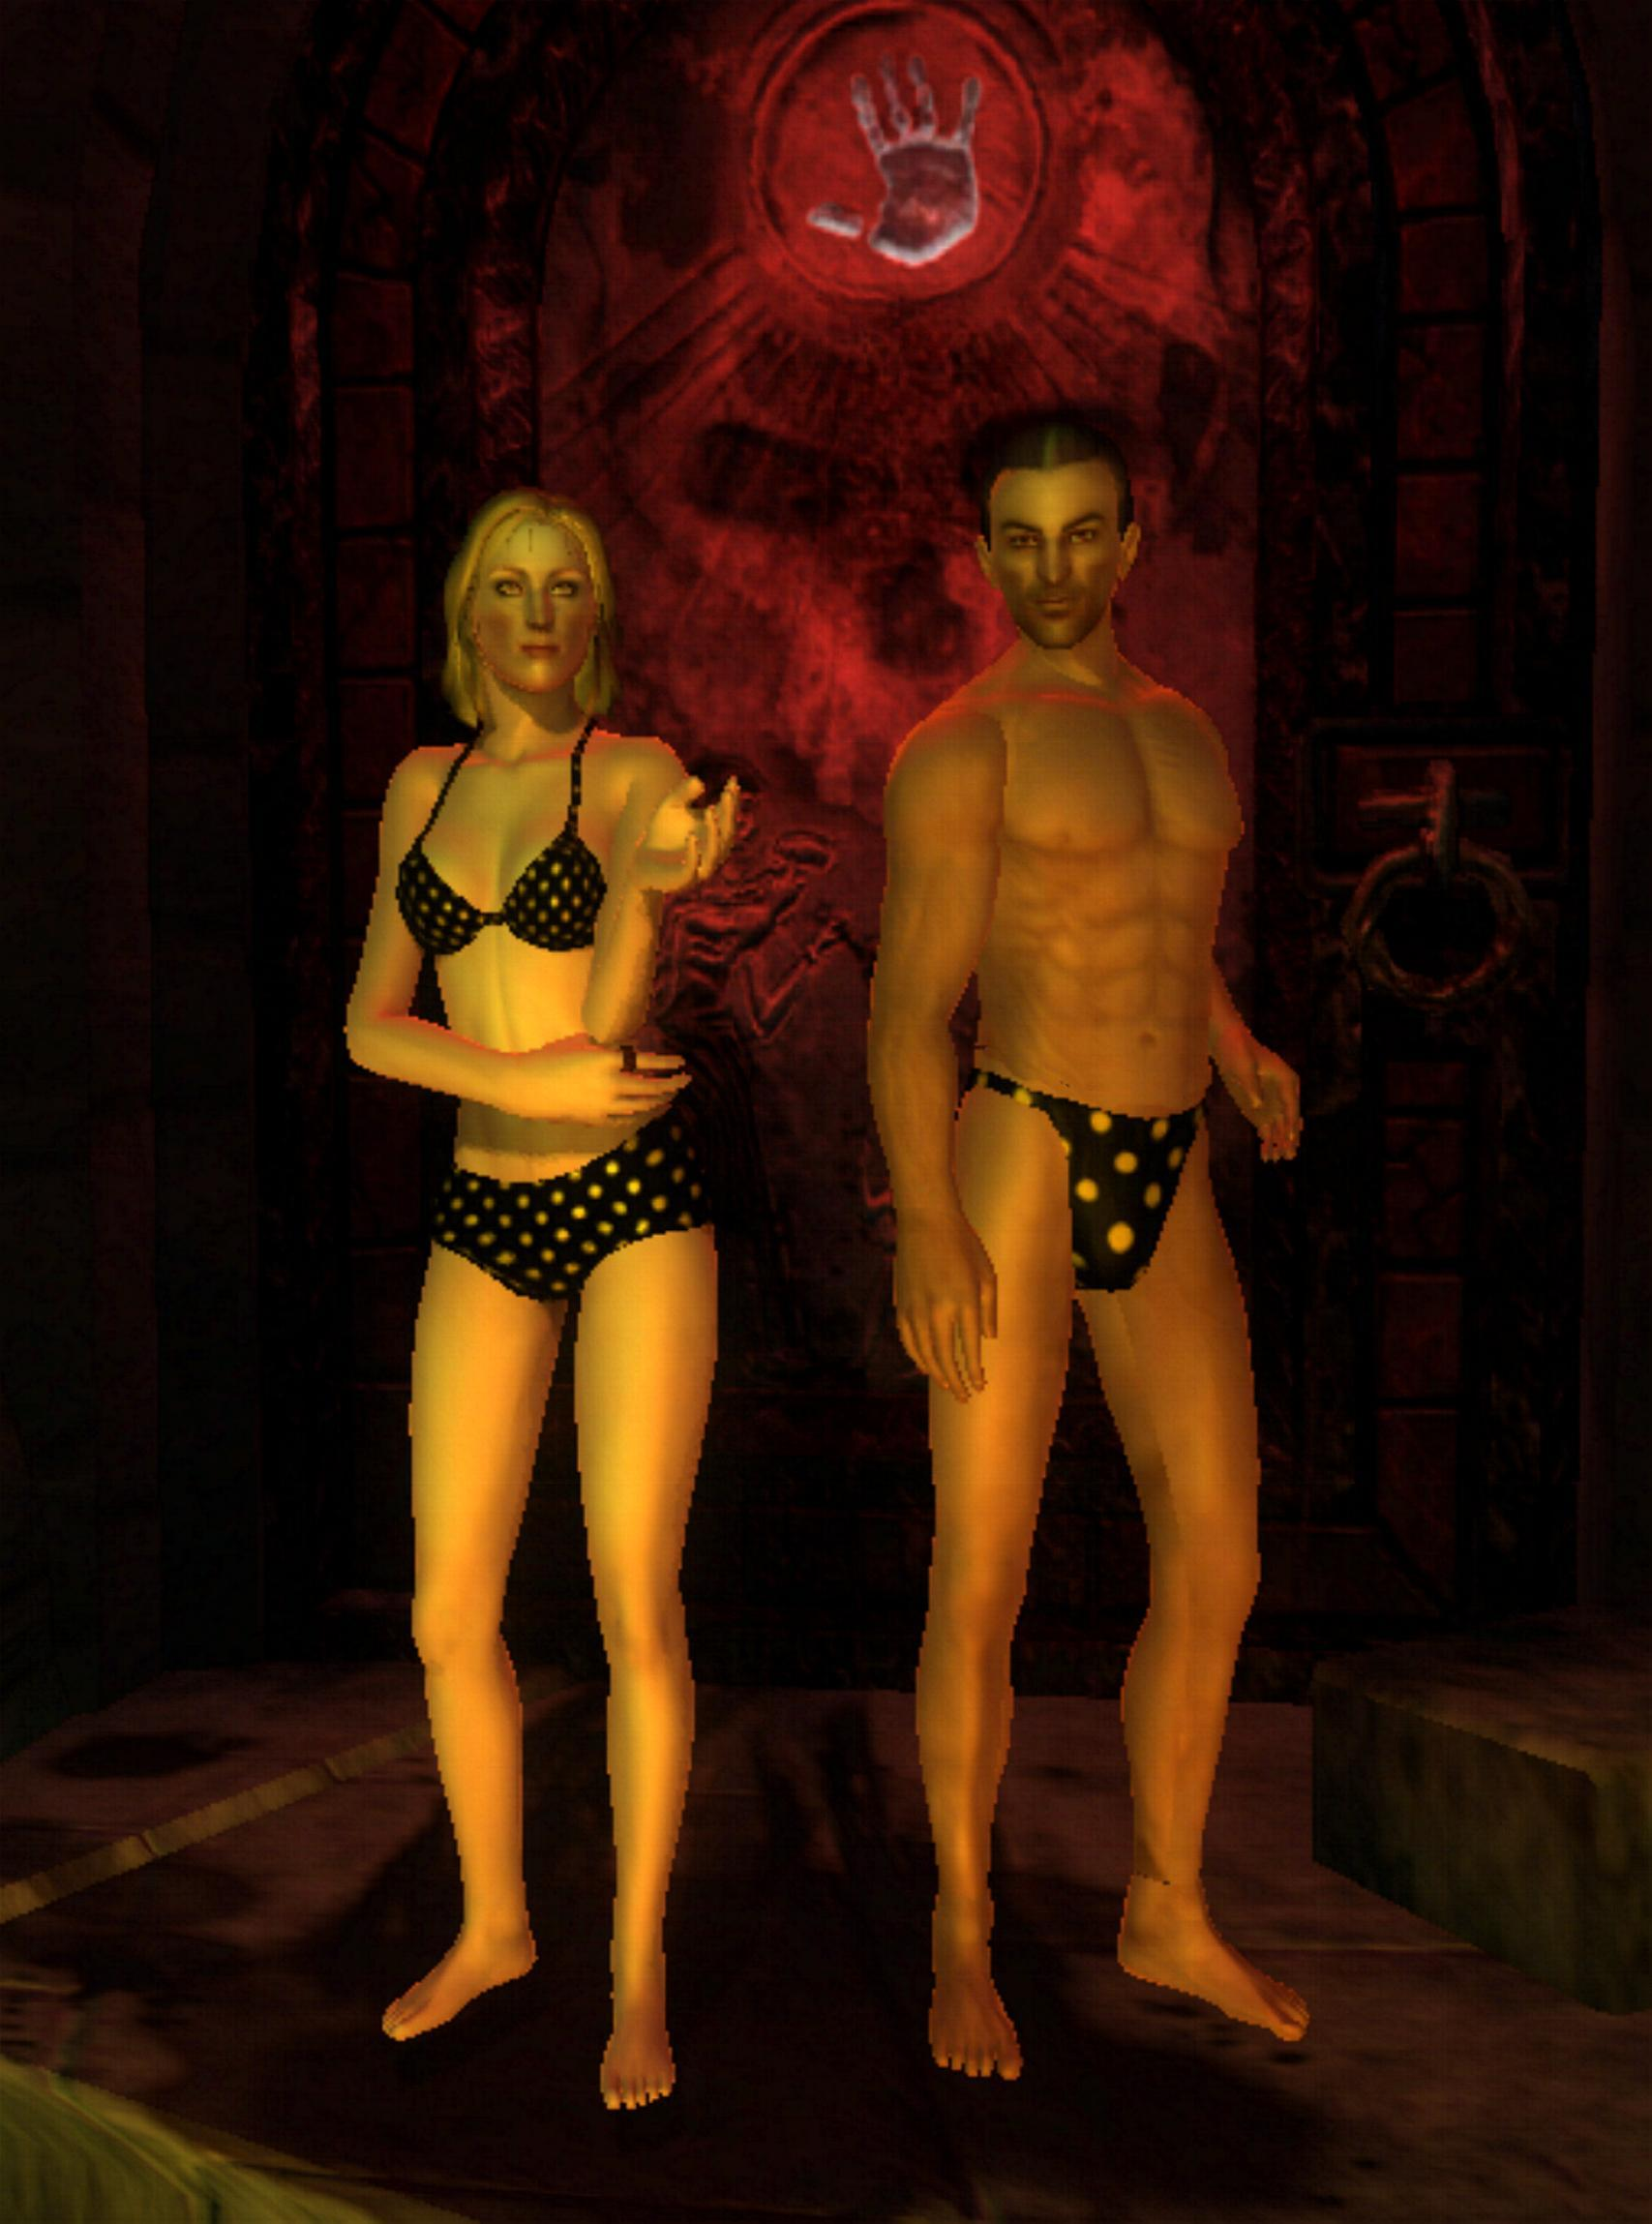 Sexy Wednesday - The Dark Brotherhood